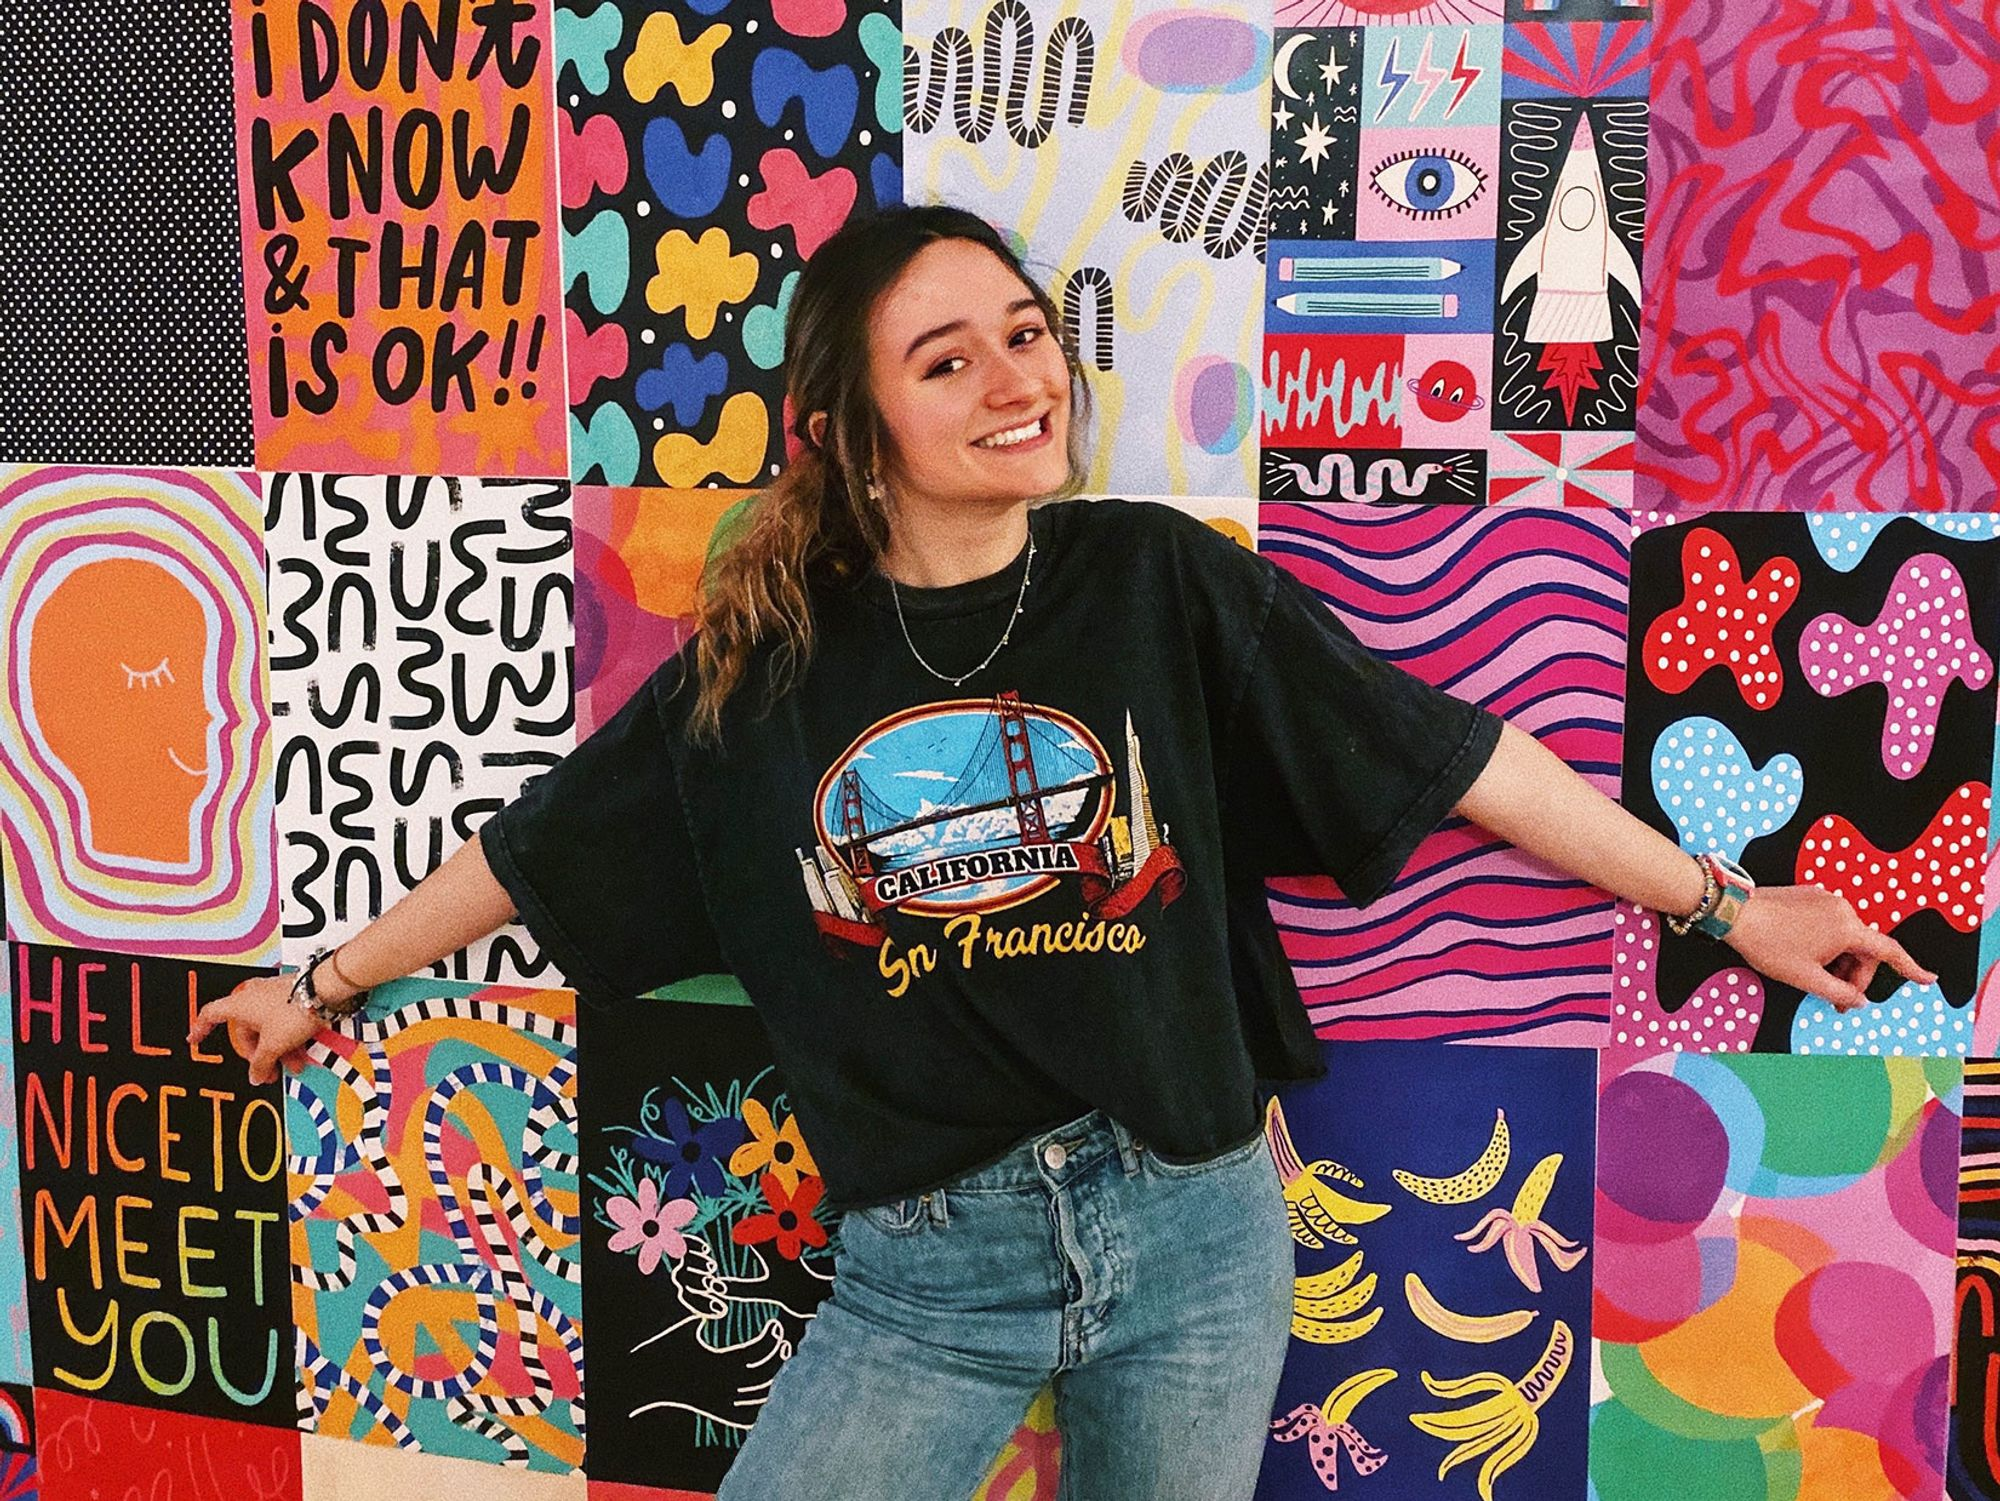 Illustrator + Activist Grace Owen on Using Art to Drive Social Change